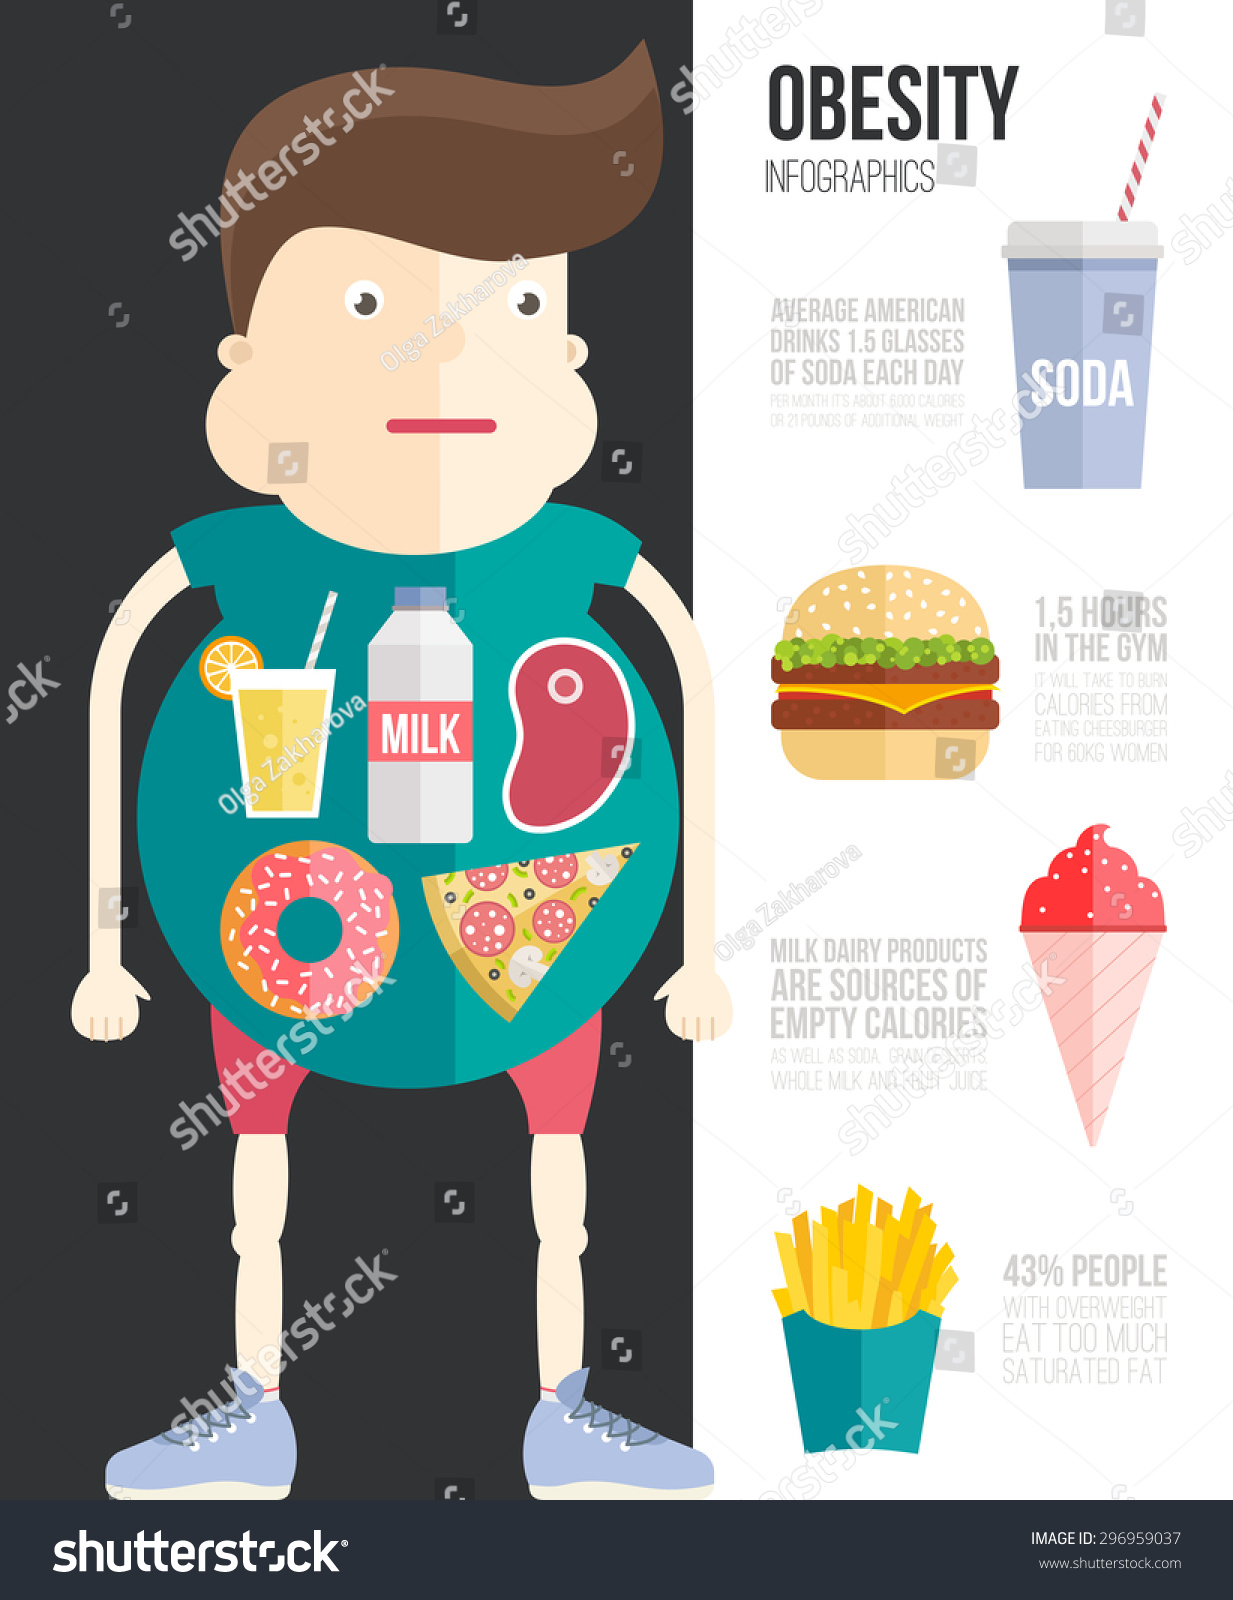 Fast Food Ads And Childhood Obesity